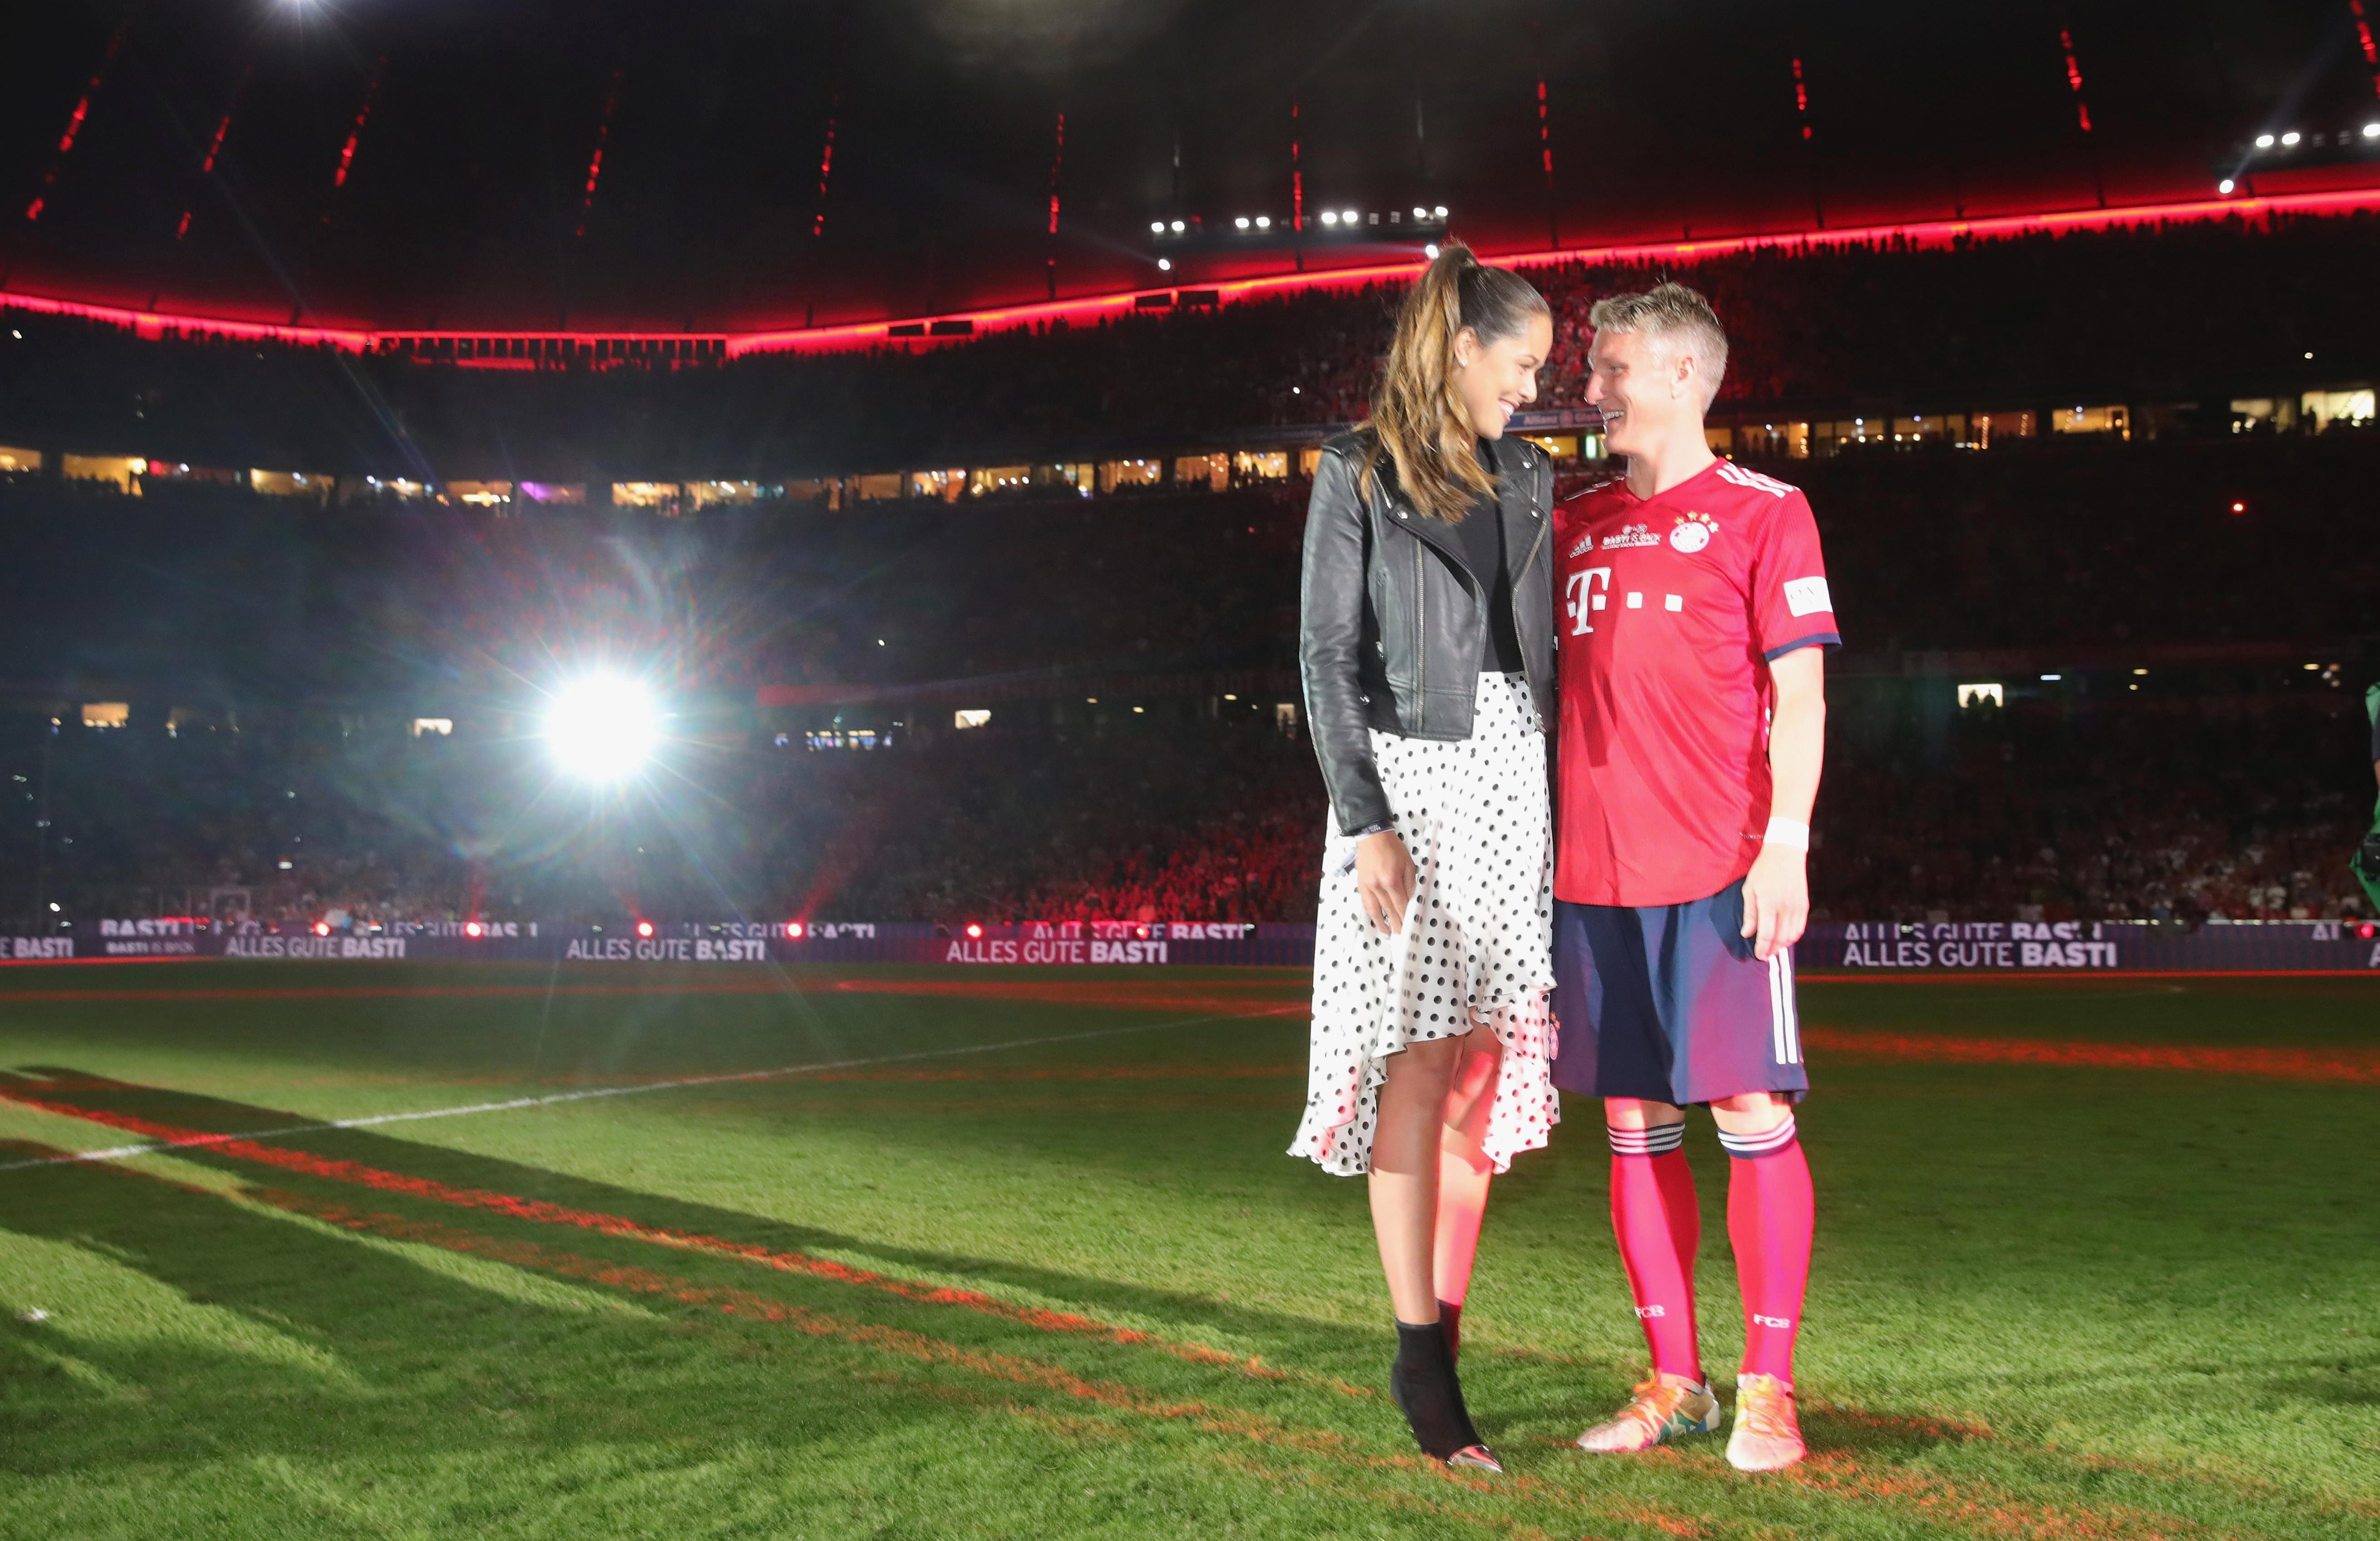 Ana Ivanovic joined Bastian Schweinsteiger on the pitch at Allianz Arena